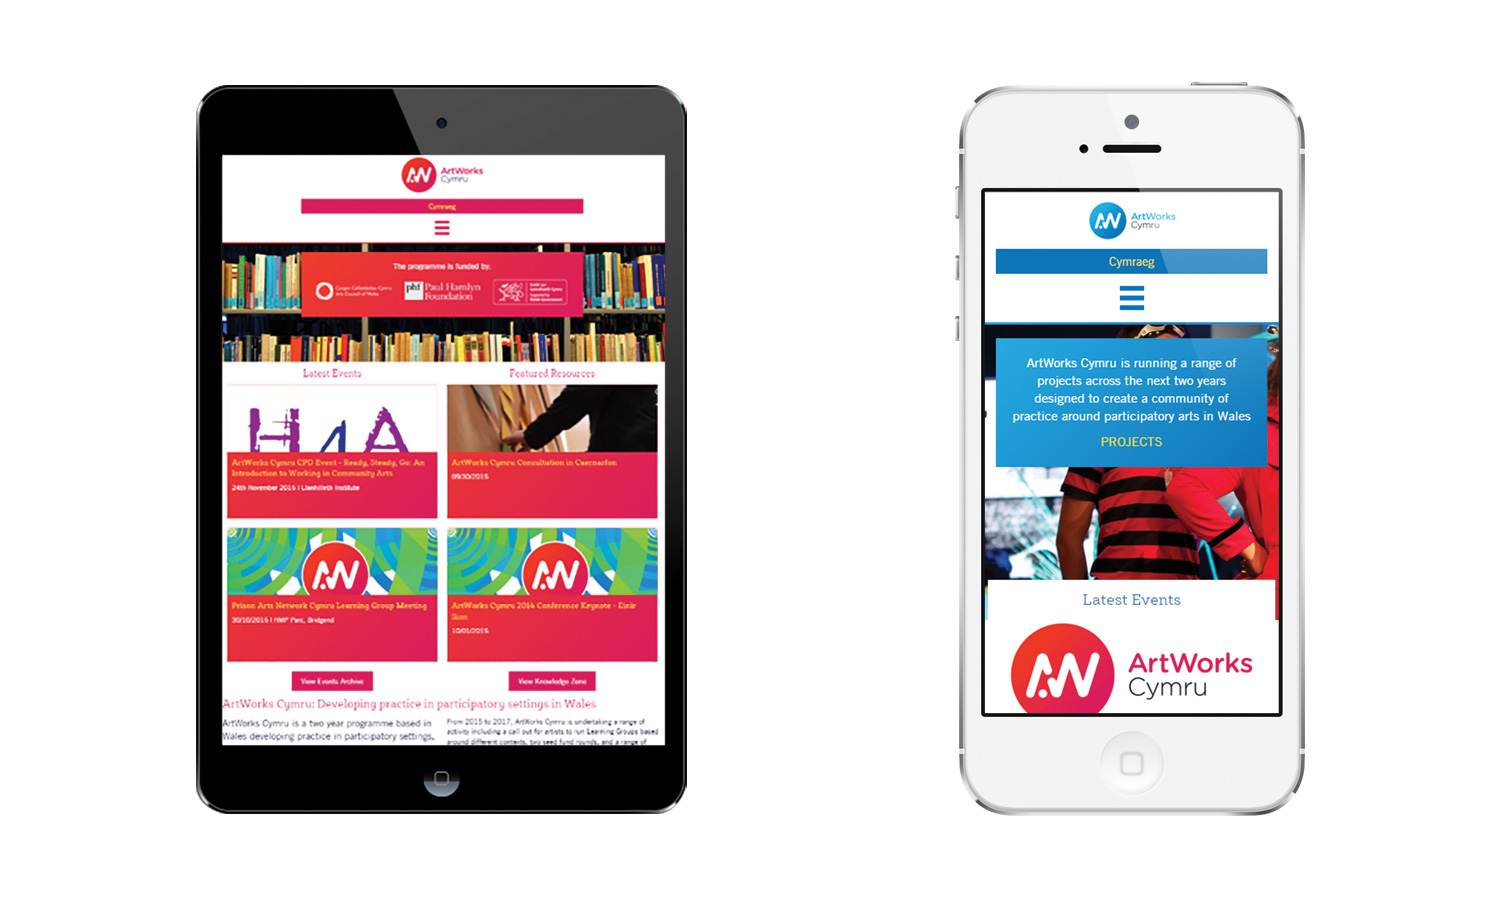 ArtWorks Cymru Responsive Web Design on Mobile